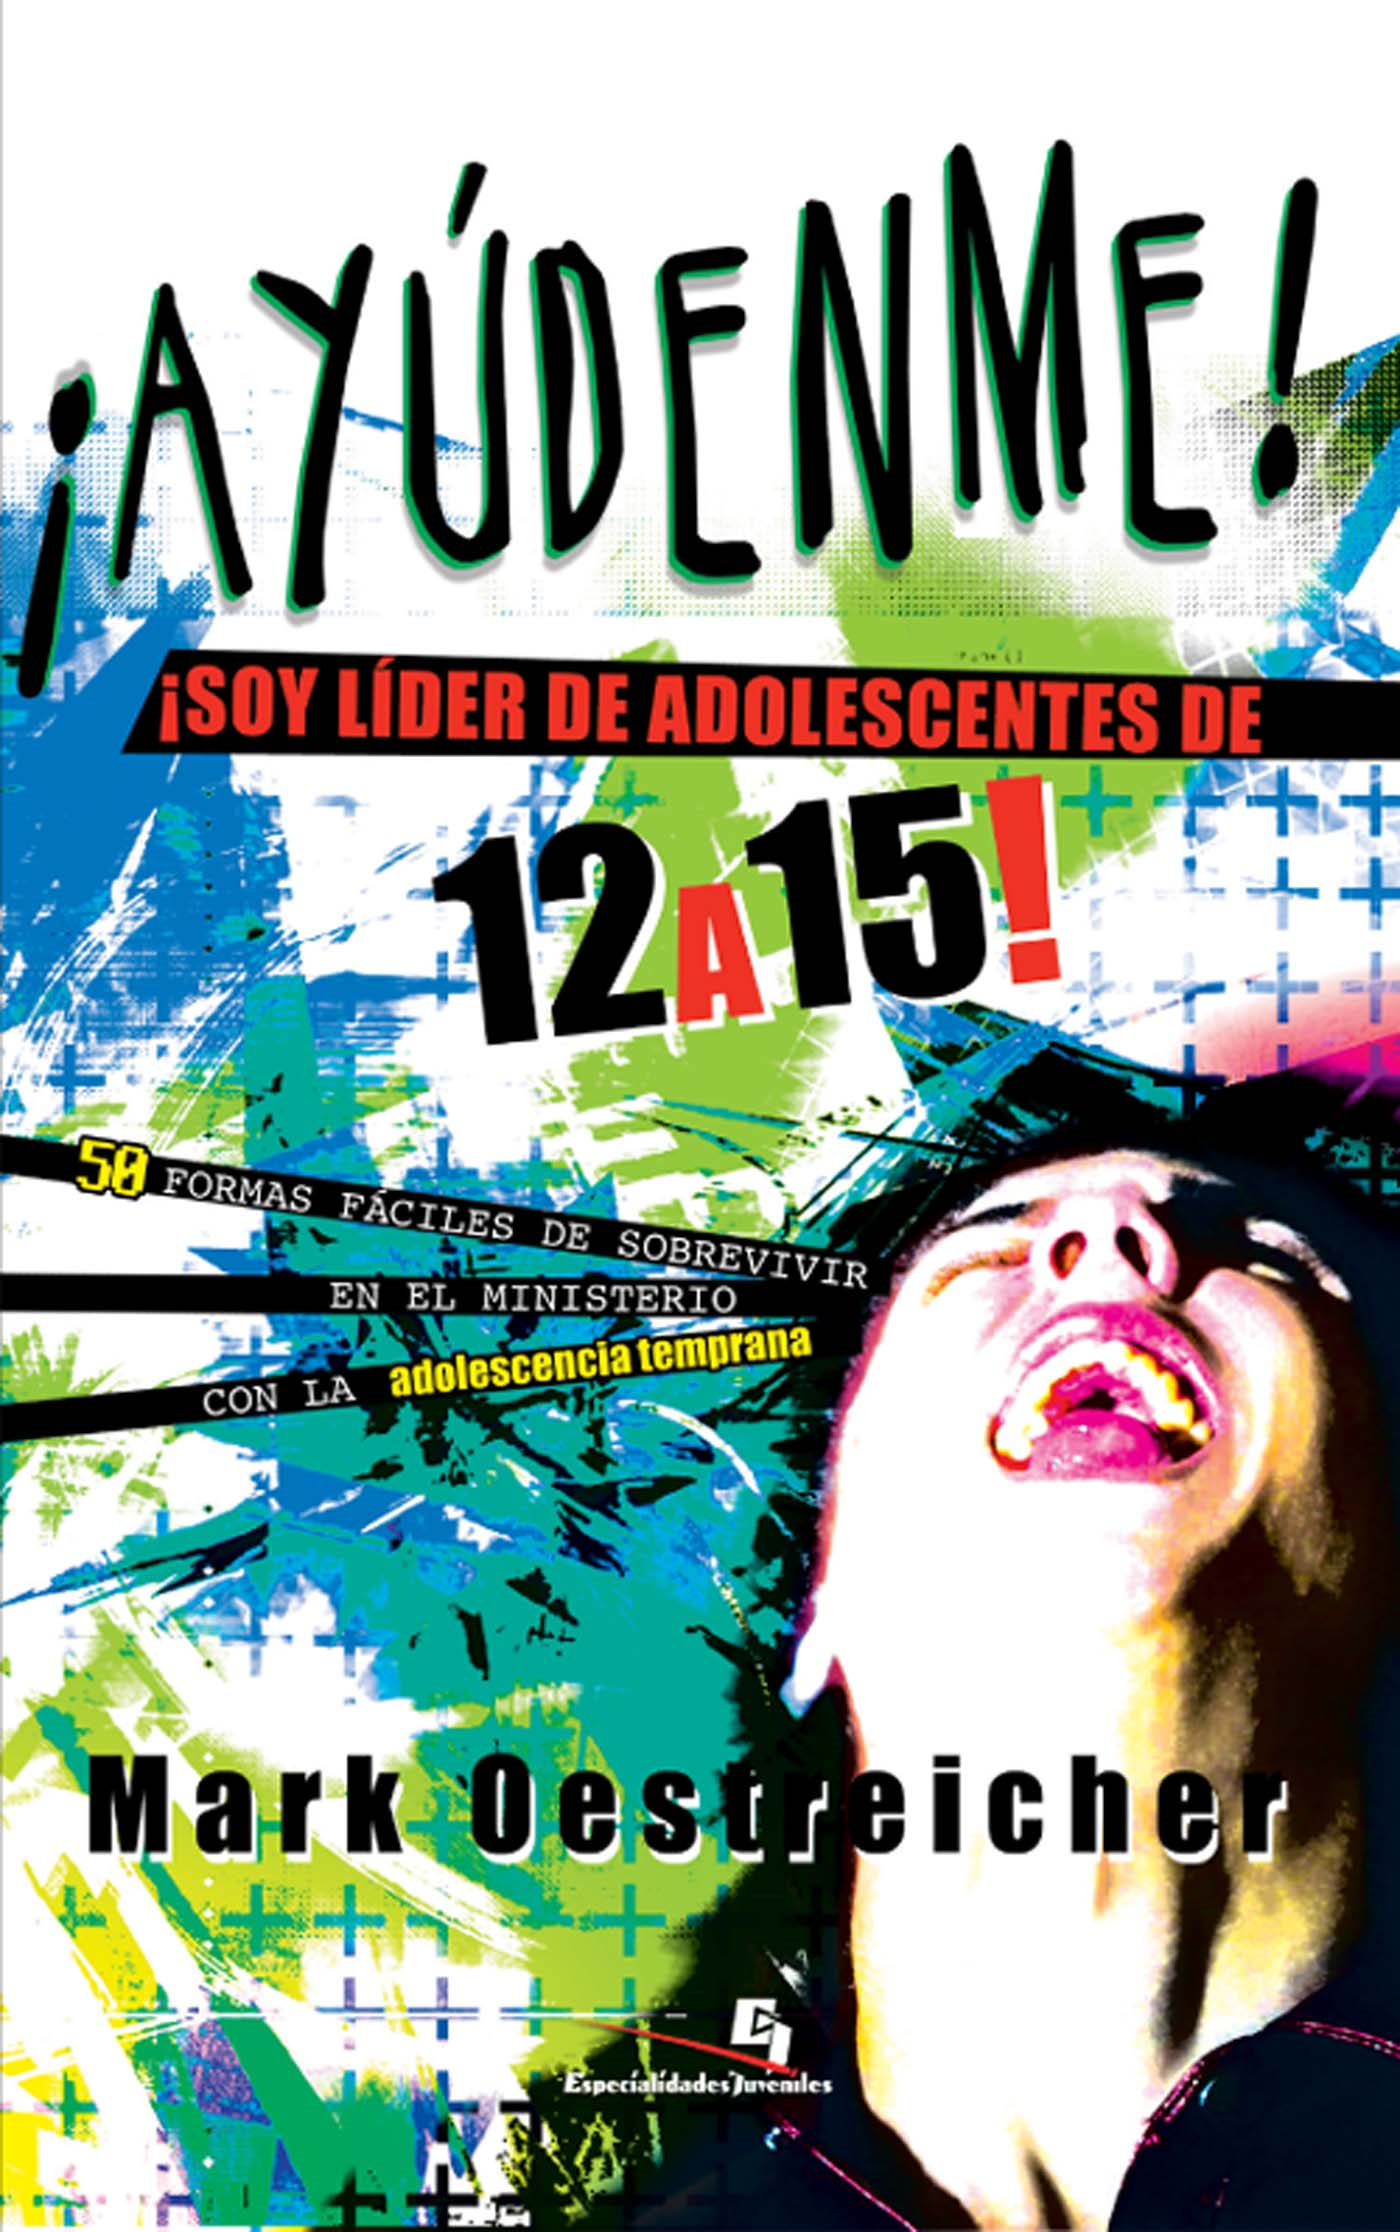 ¡Ayúdenme! Lidero adolescentes de 12 a 15 By: Mark   Oestreicher